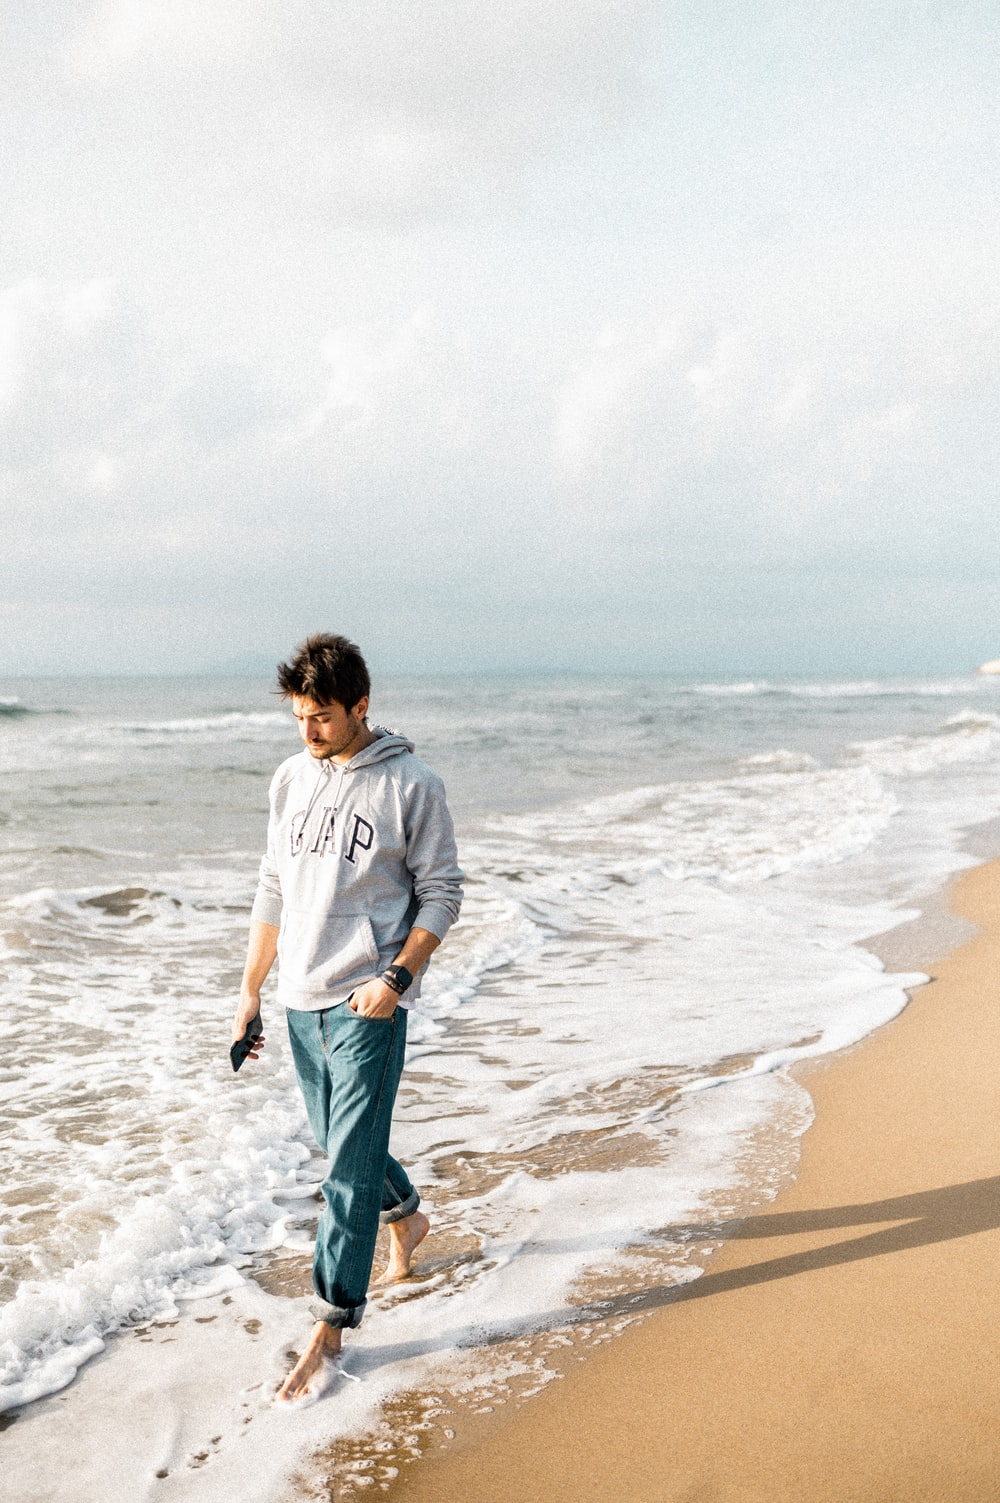 man in gray long sleeve shirt and green shorts standing on beach during daytime